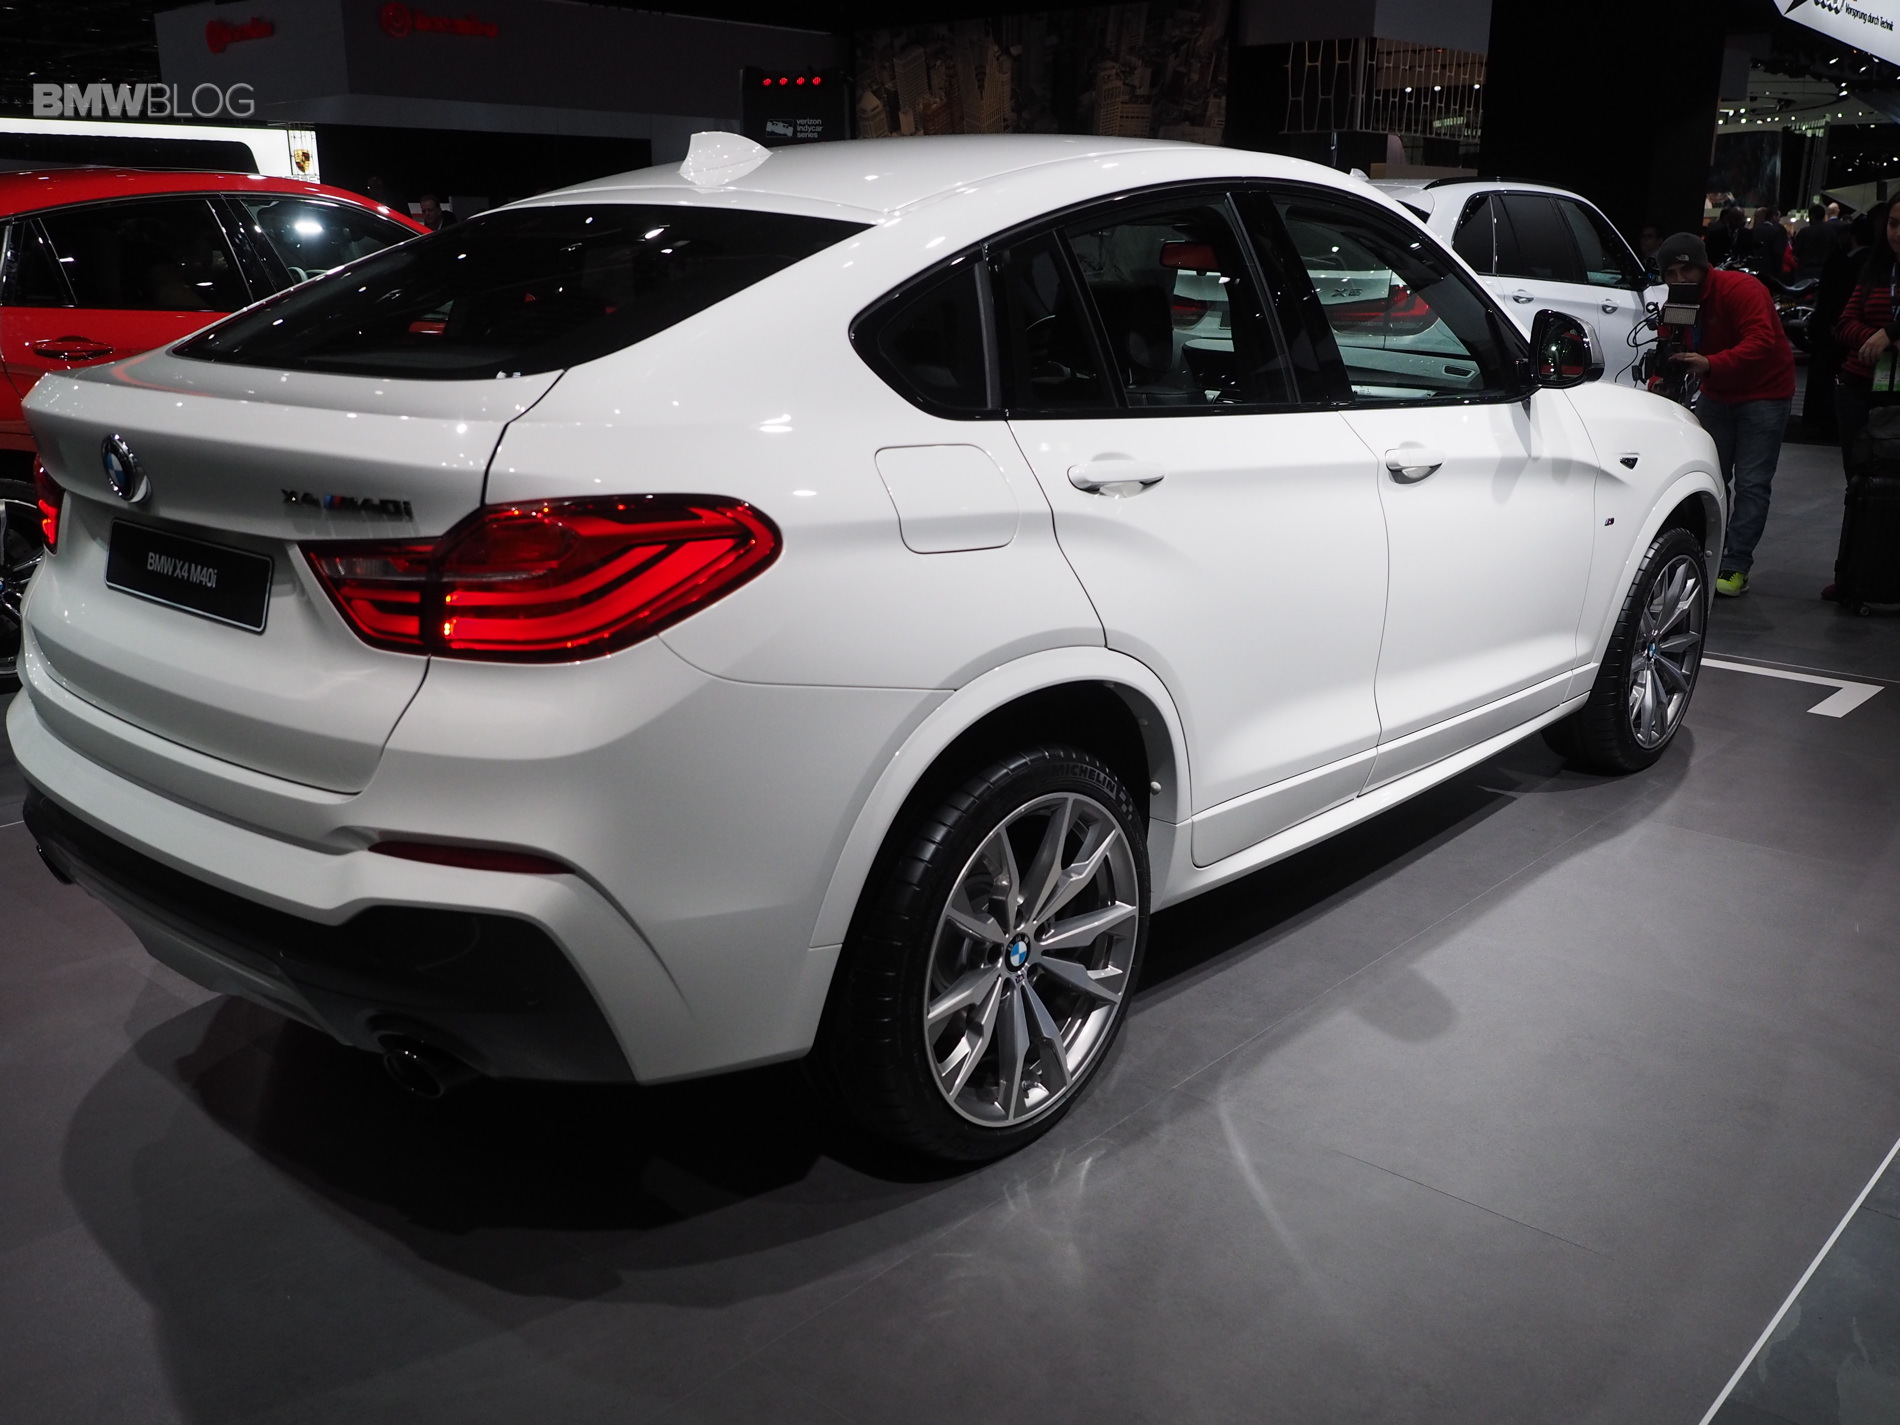 Bmw X4 M40i Live Fotos Zeigen Power Suv Mit 360 Ps In Detroit